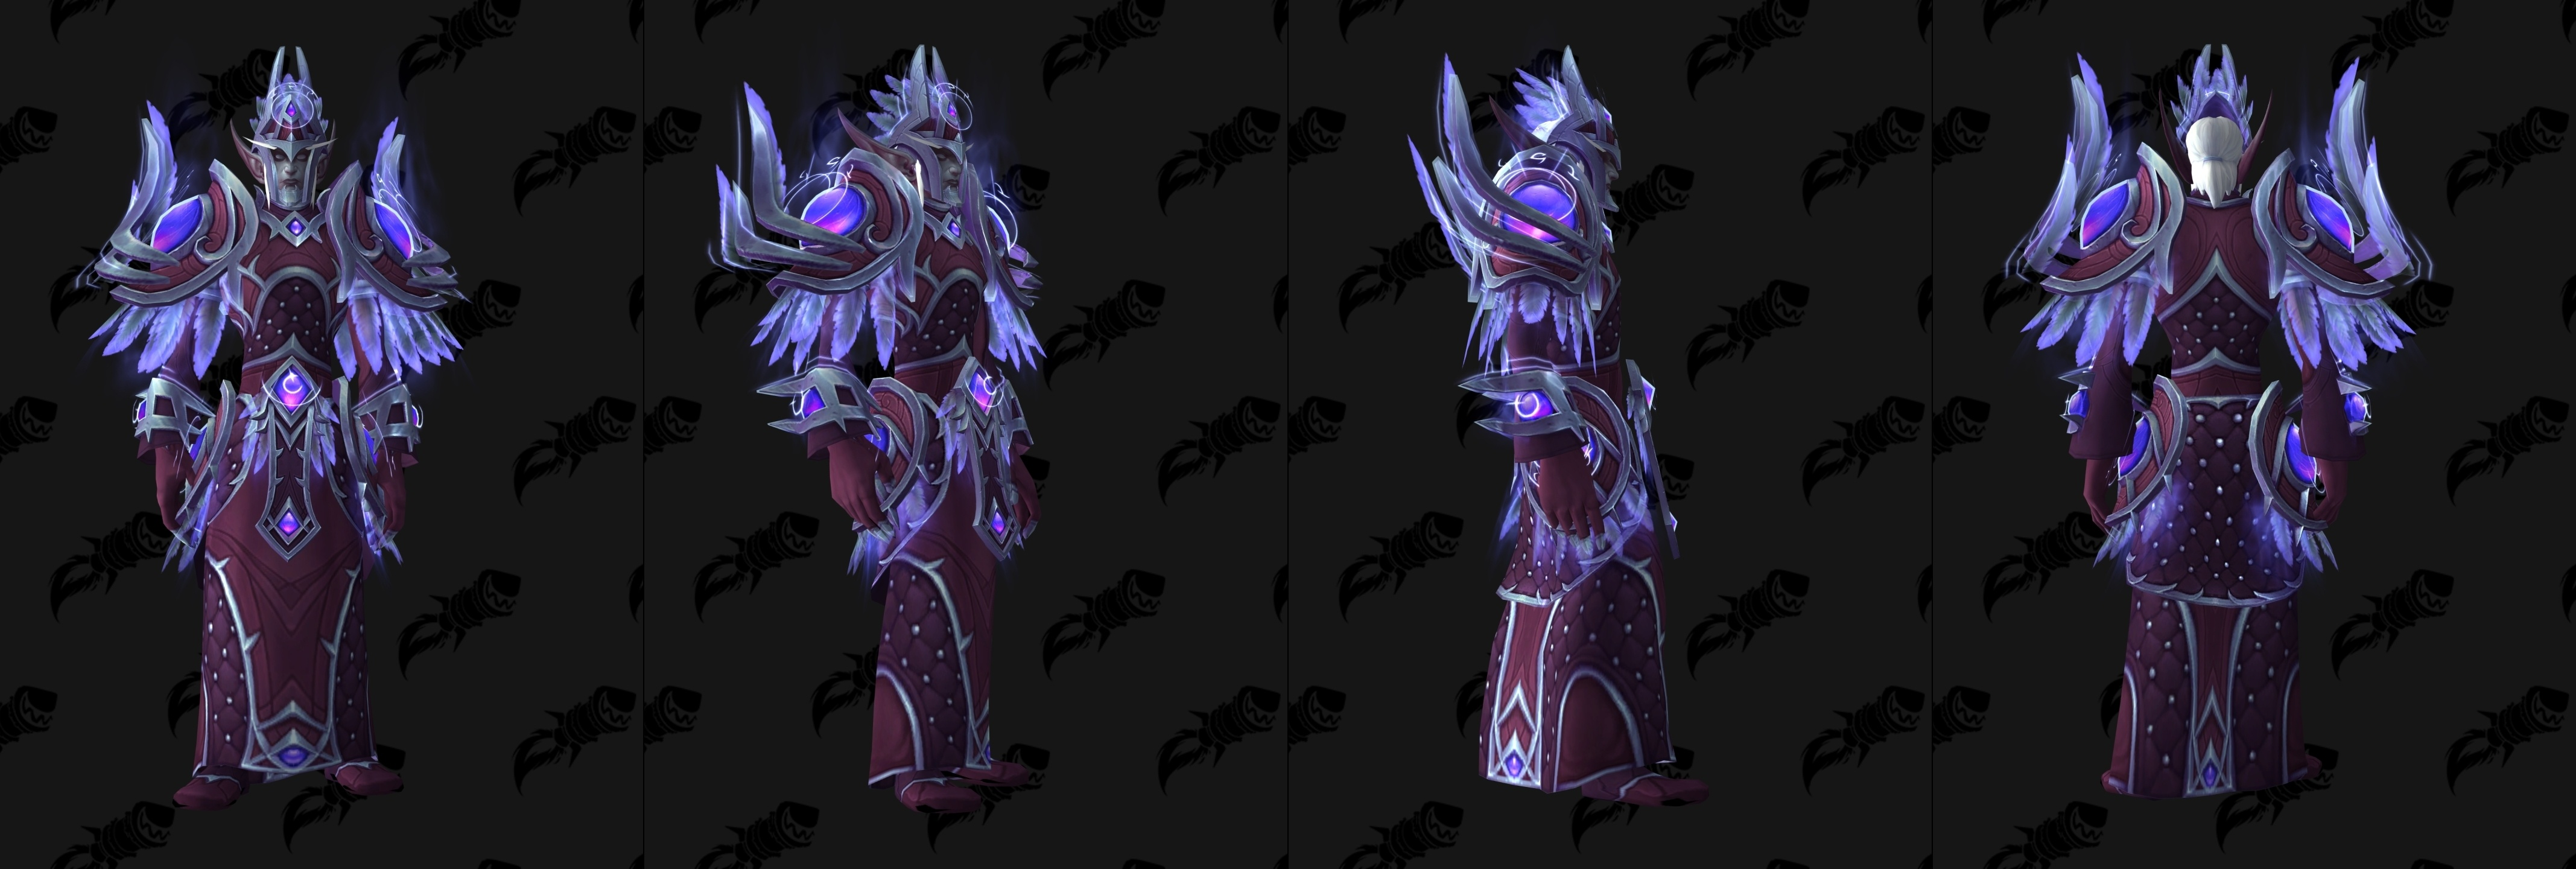 Heritage Armor Sets Guides Wowhead This video will show you all the void elf customizations, racials, heritage armor, flirts, jokes, mounts and the scenario. heritage armor sets guides wowhead